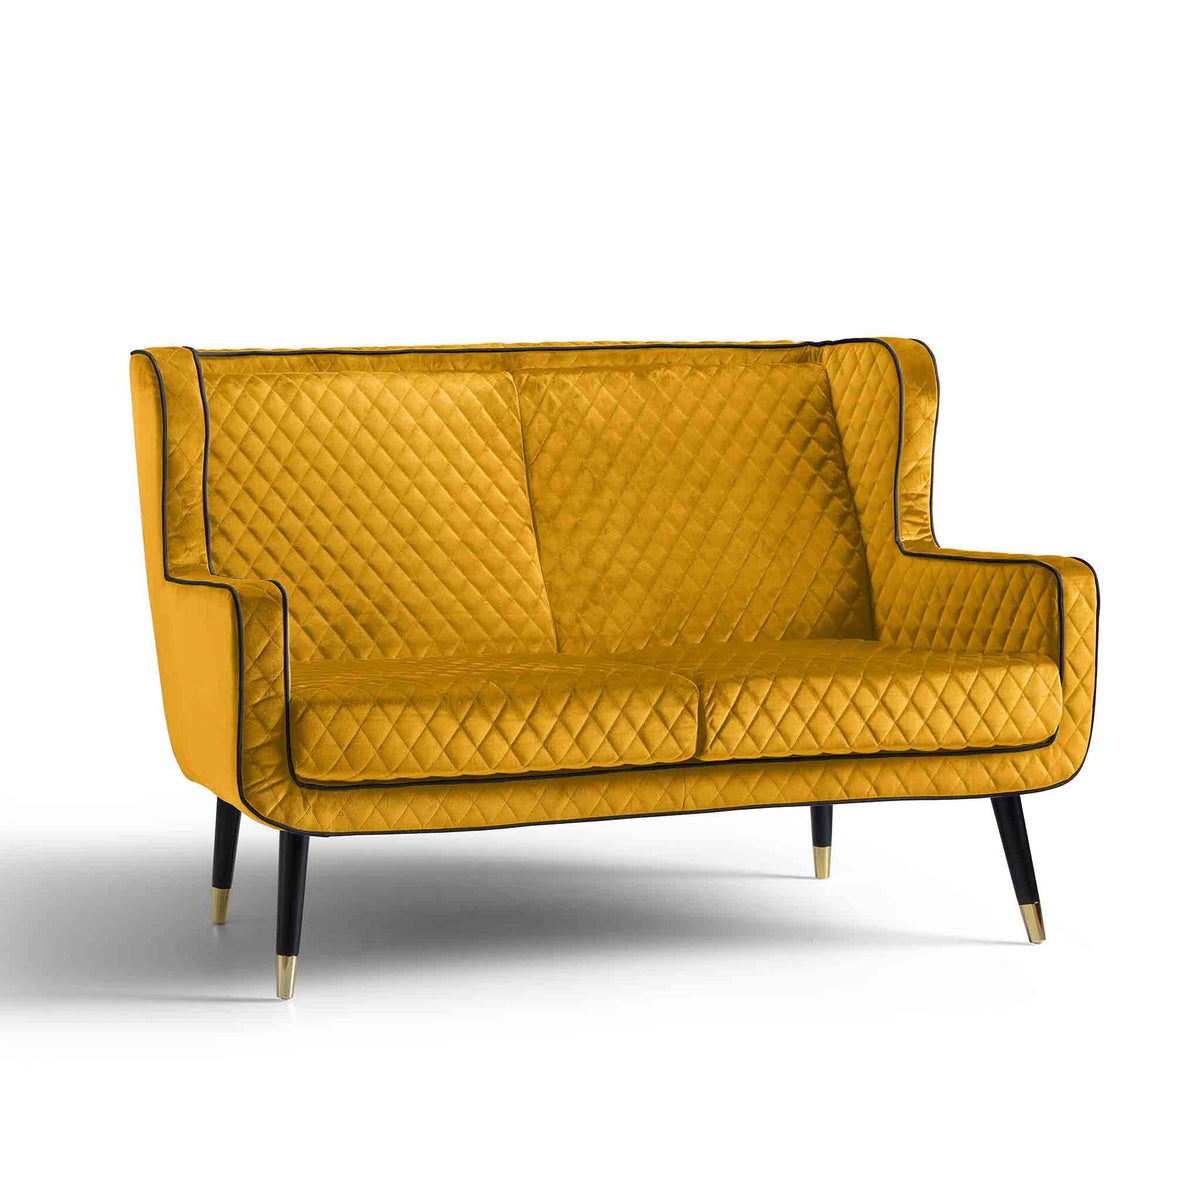 Monty Gold Two Seater Chair from Roseland Furniture